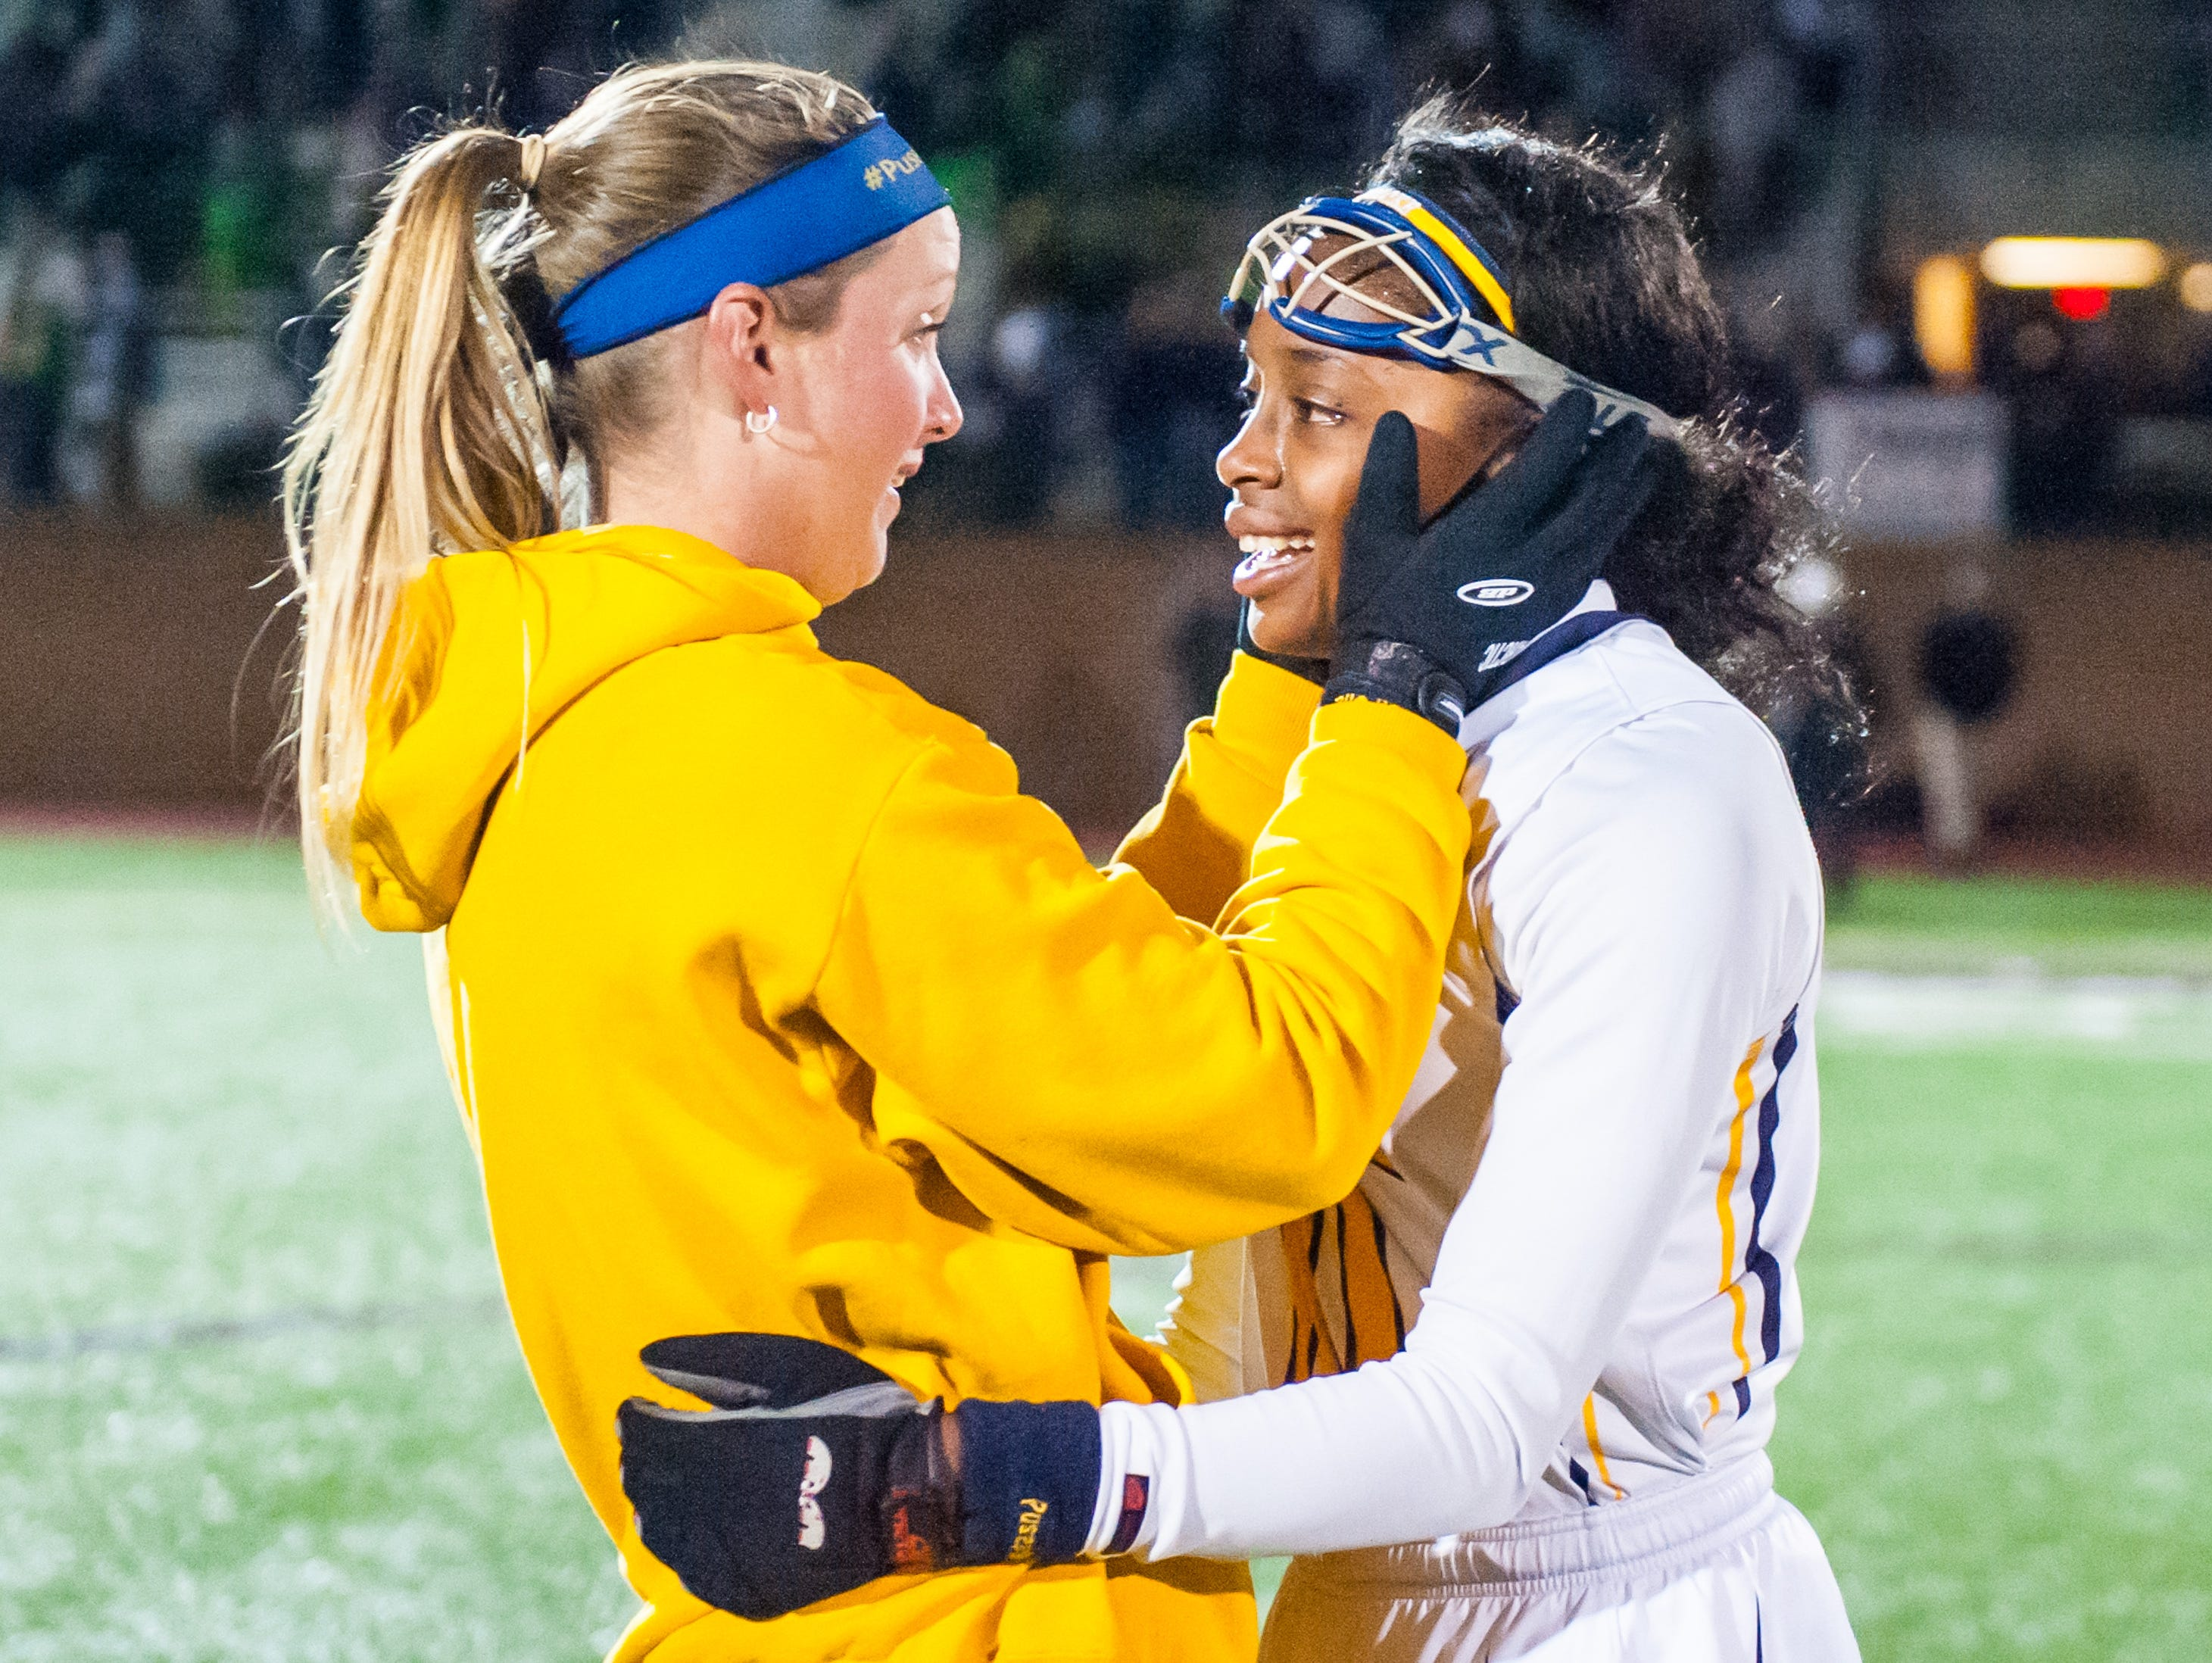 Pocomoke midfielder Shayla Jones (10) and head coach Brandi Castaneda embrace after winning the MPSSSAA 1A State Finals on Saturday evening at Washington College in Chestertown